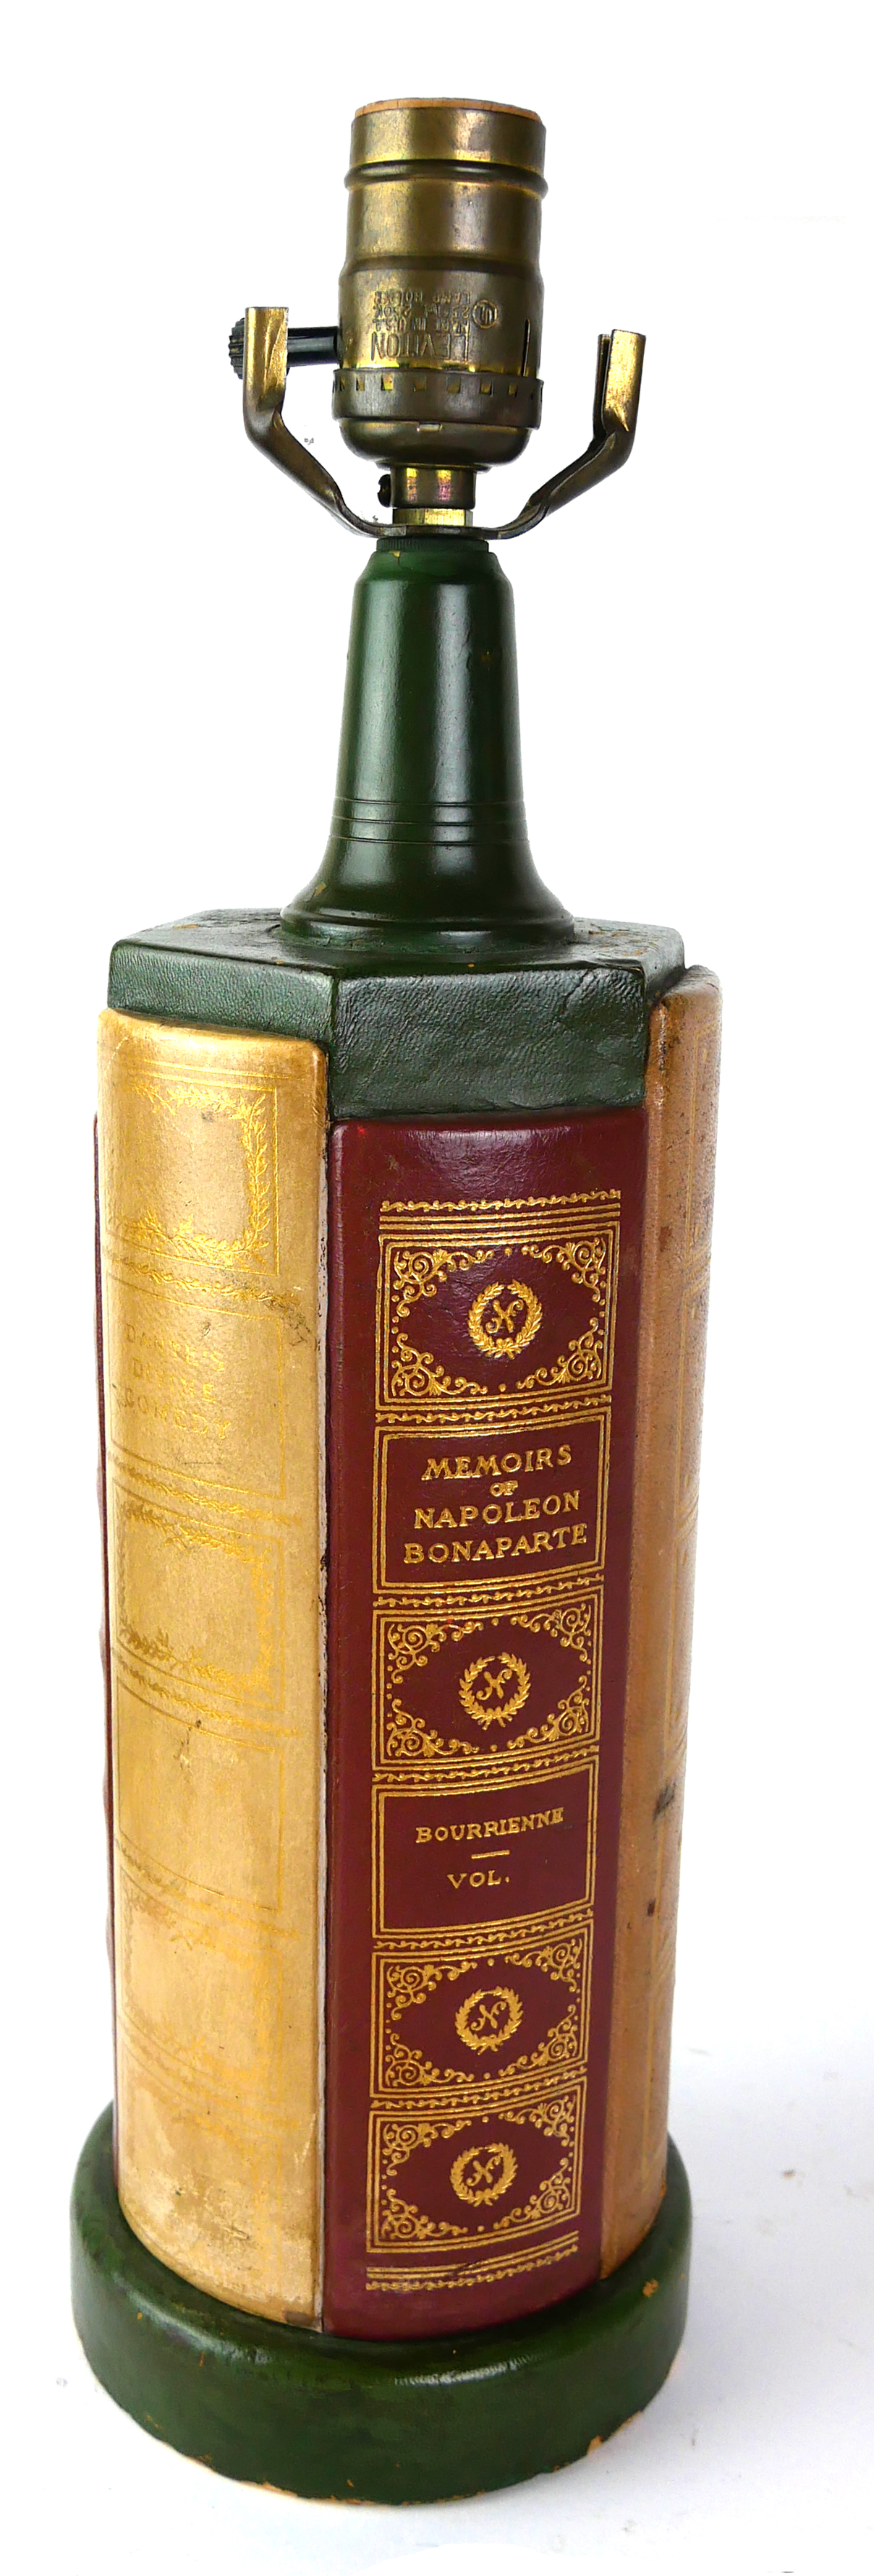 A NOVELTY LEATHER BOUND HARDBACK 'BOOK' LAMP Set with the spines of various books including 'The - Image 4 of 4